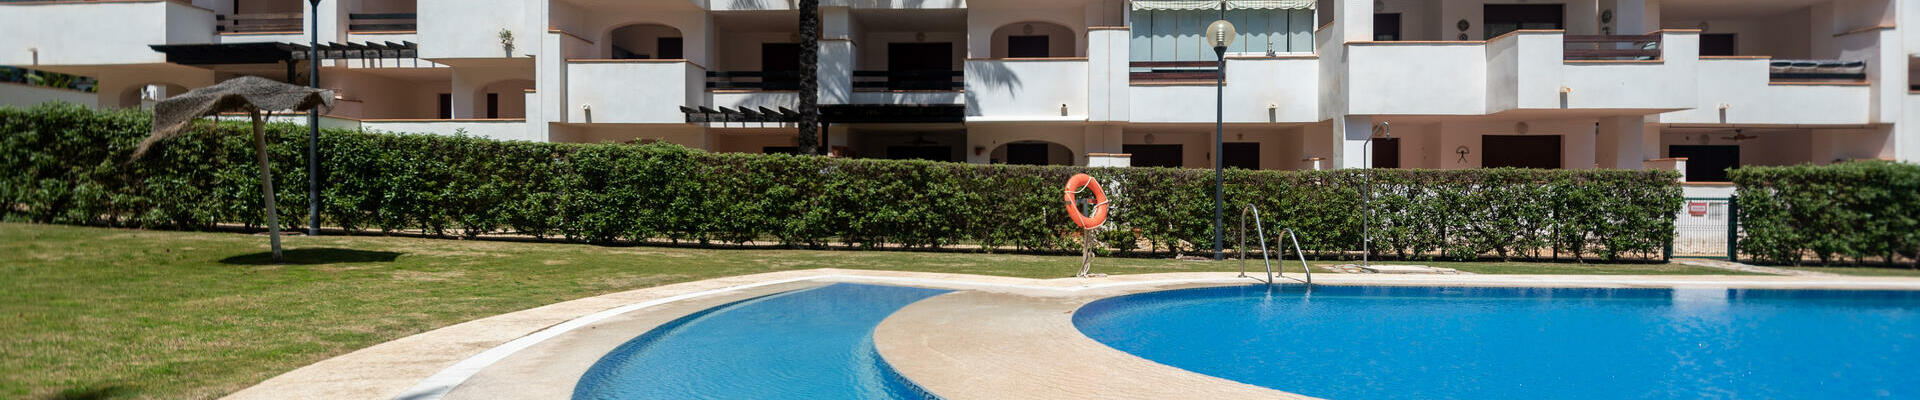 A1422: 2 Bedroom Apartment for Sale